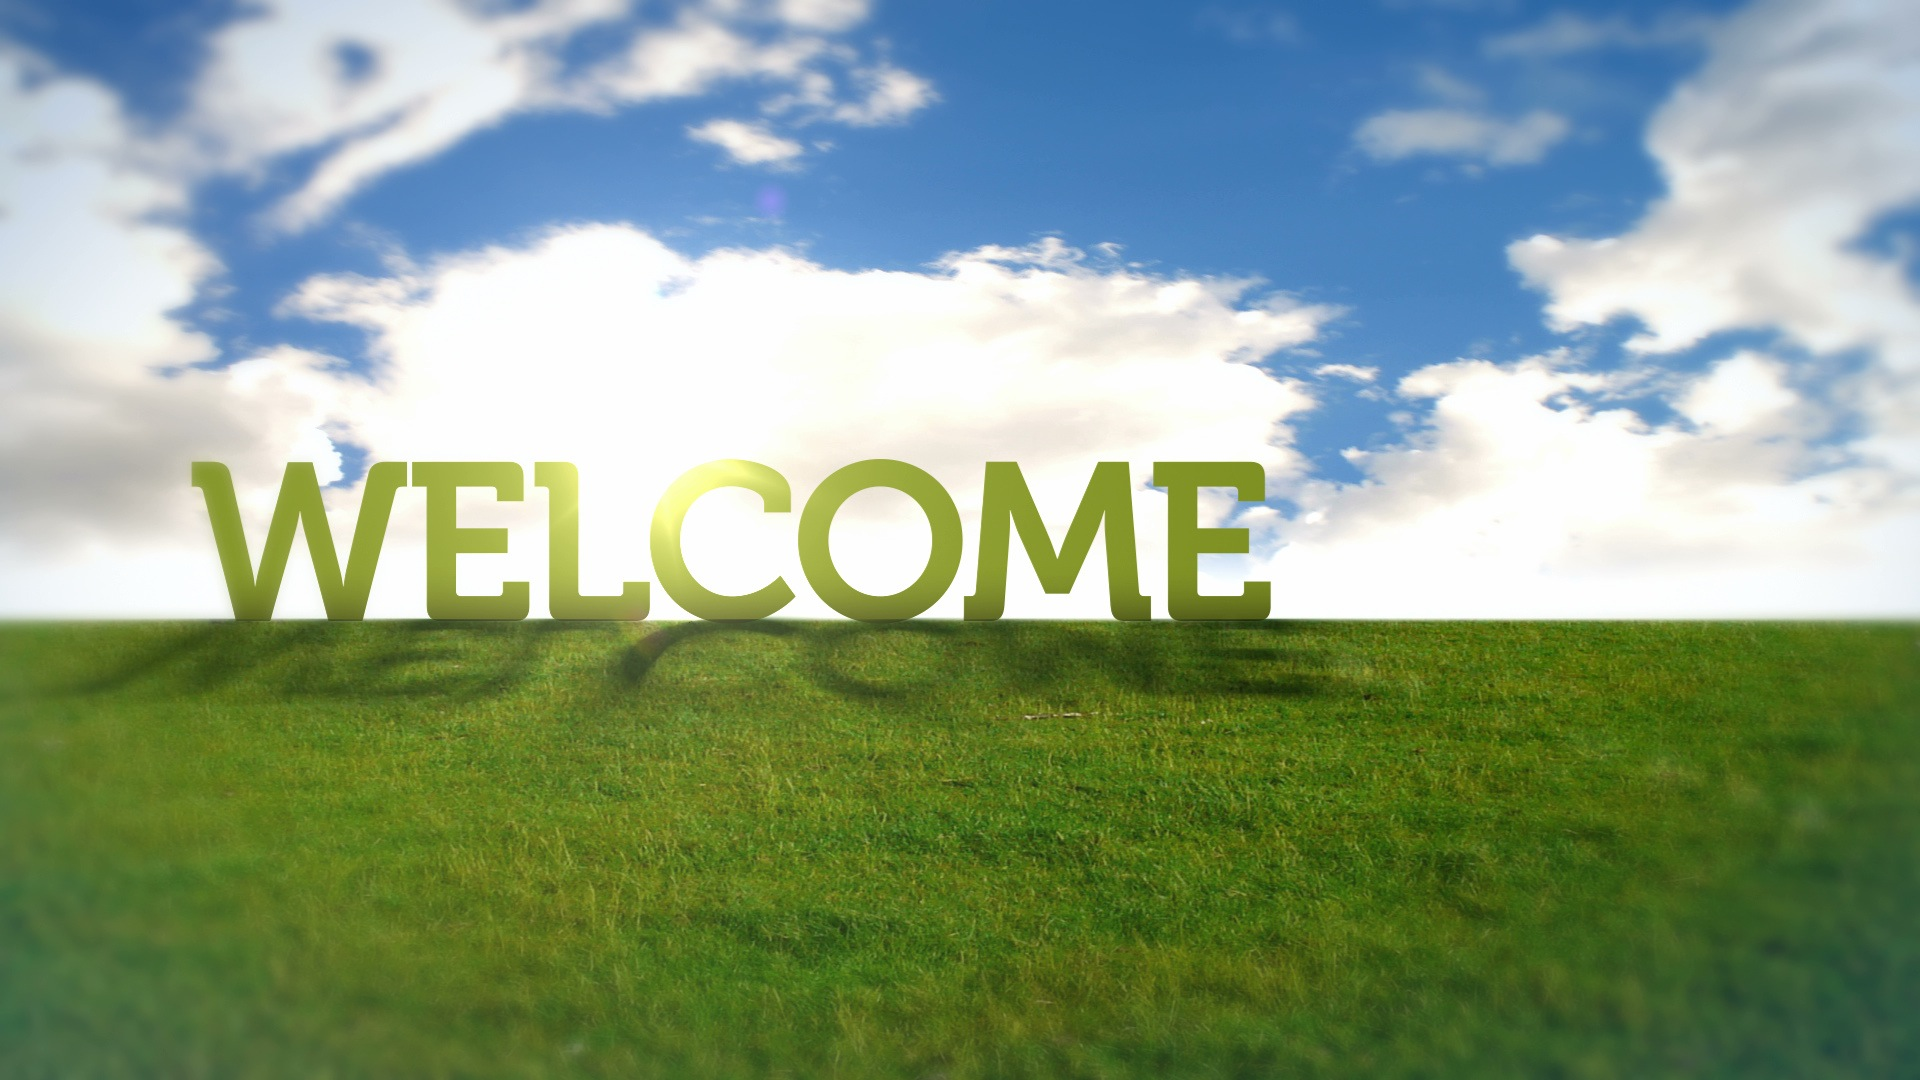 welcome-background-1921